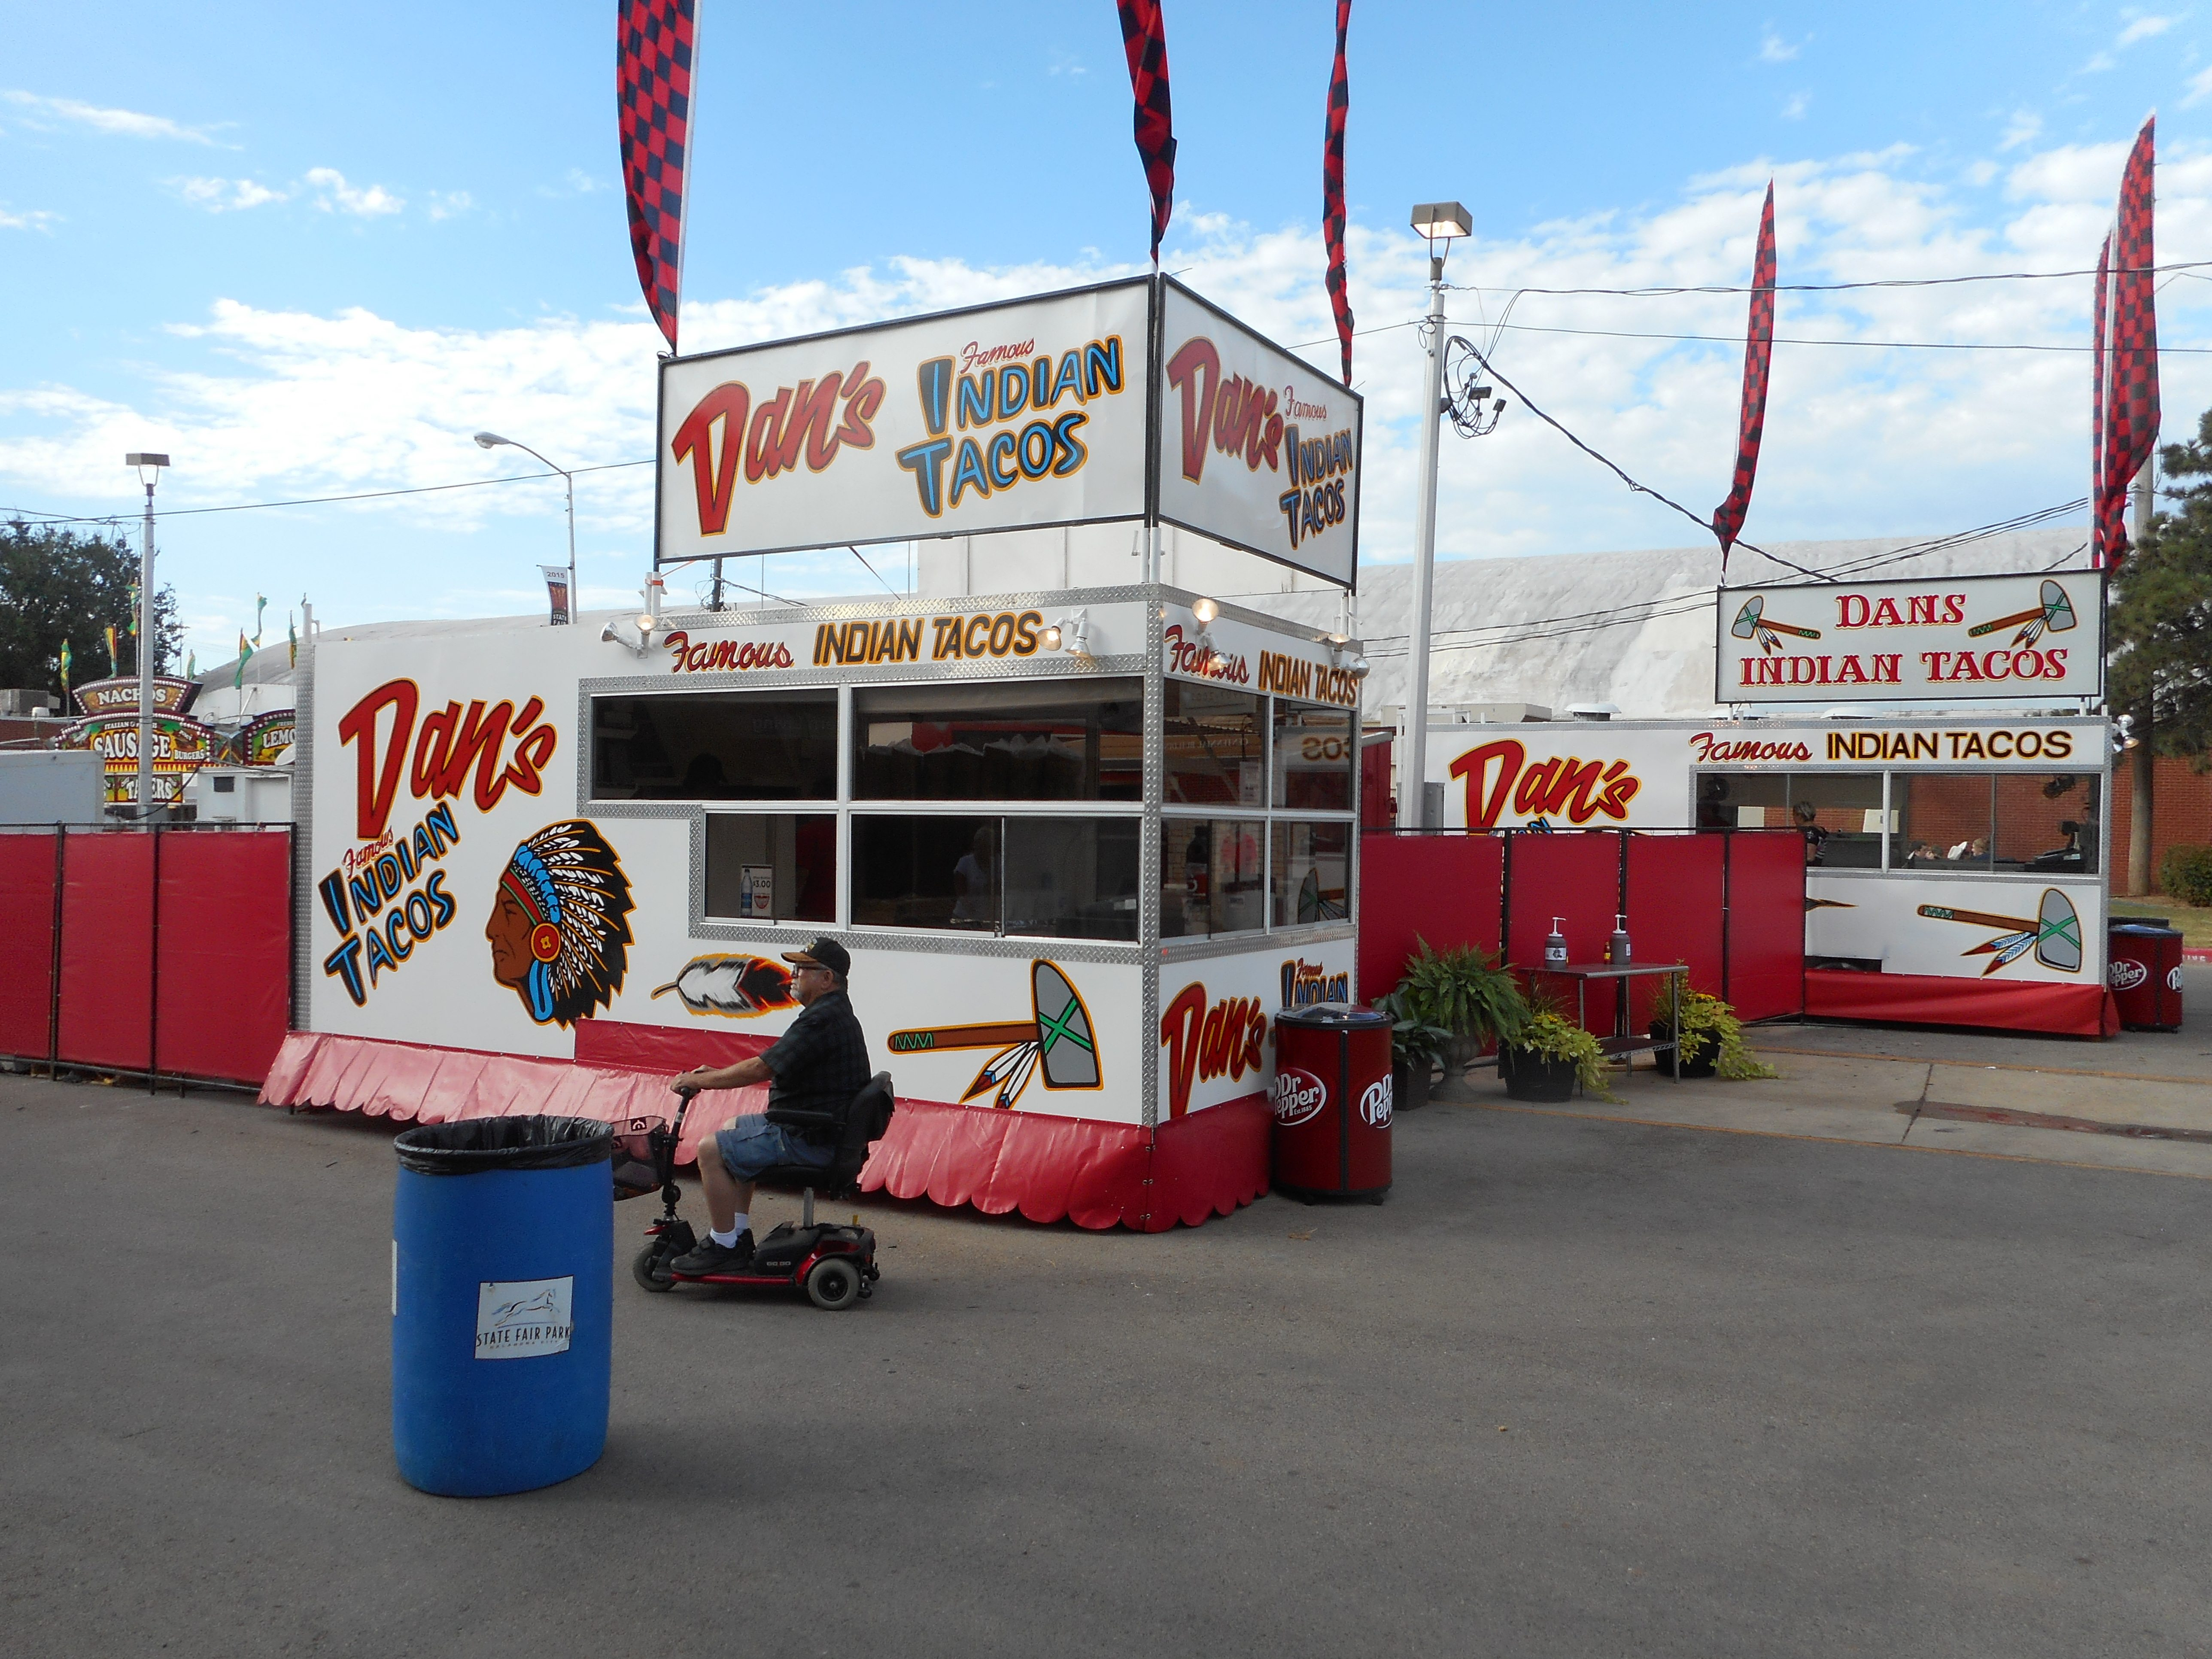 The 2015 TLO State Fair Indian Taco Guide | The Lost Ogle